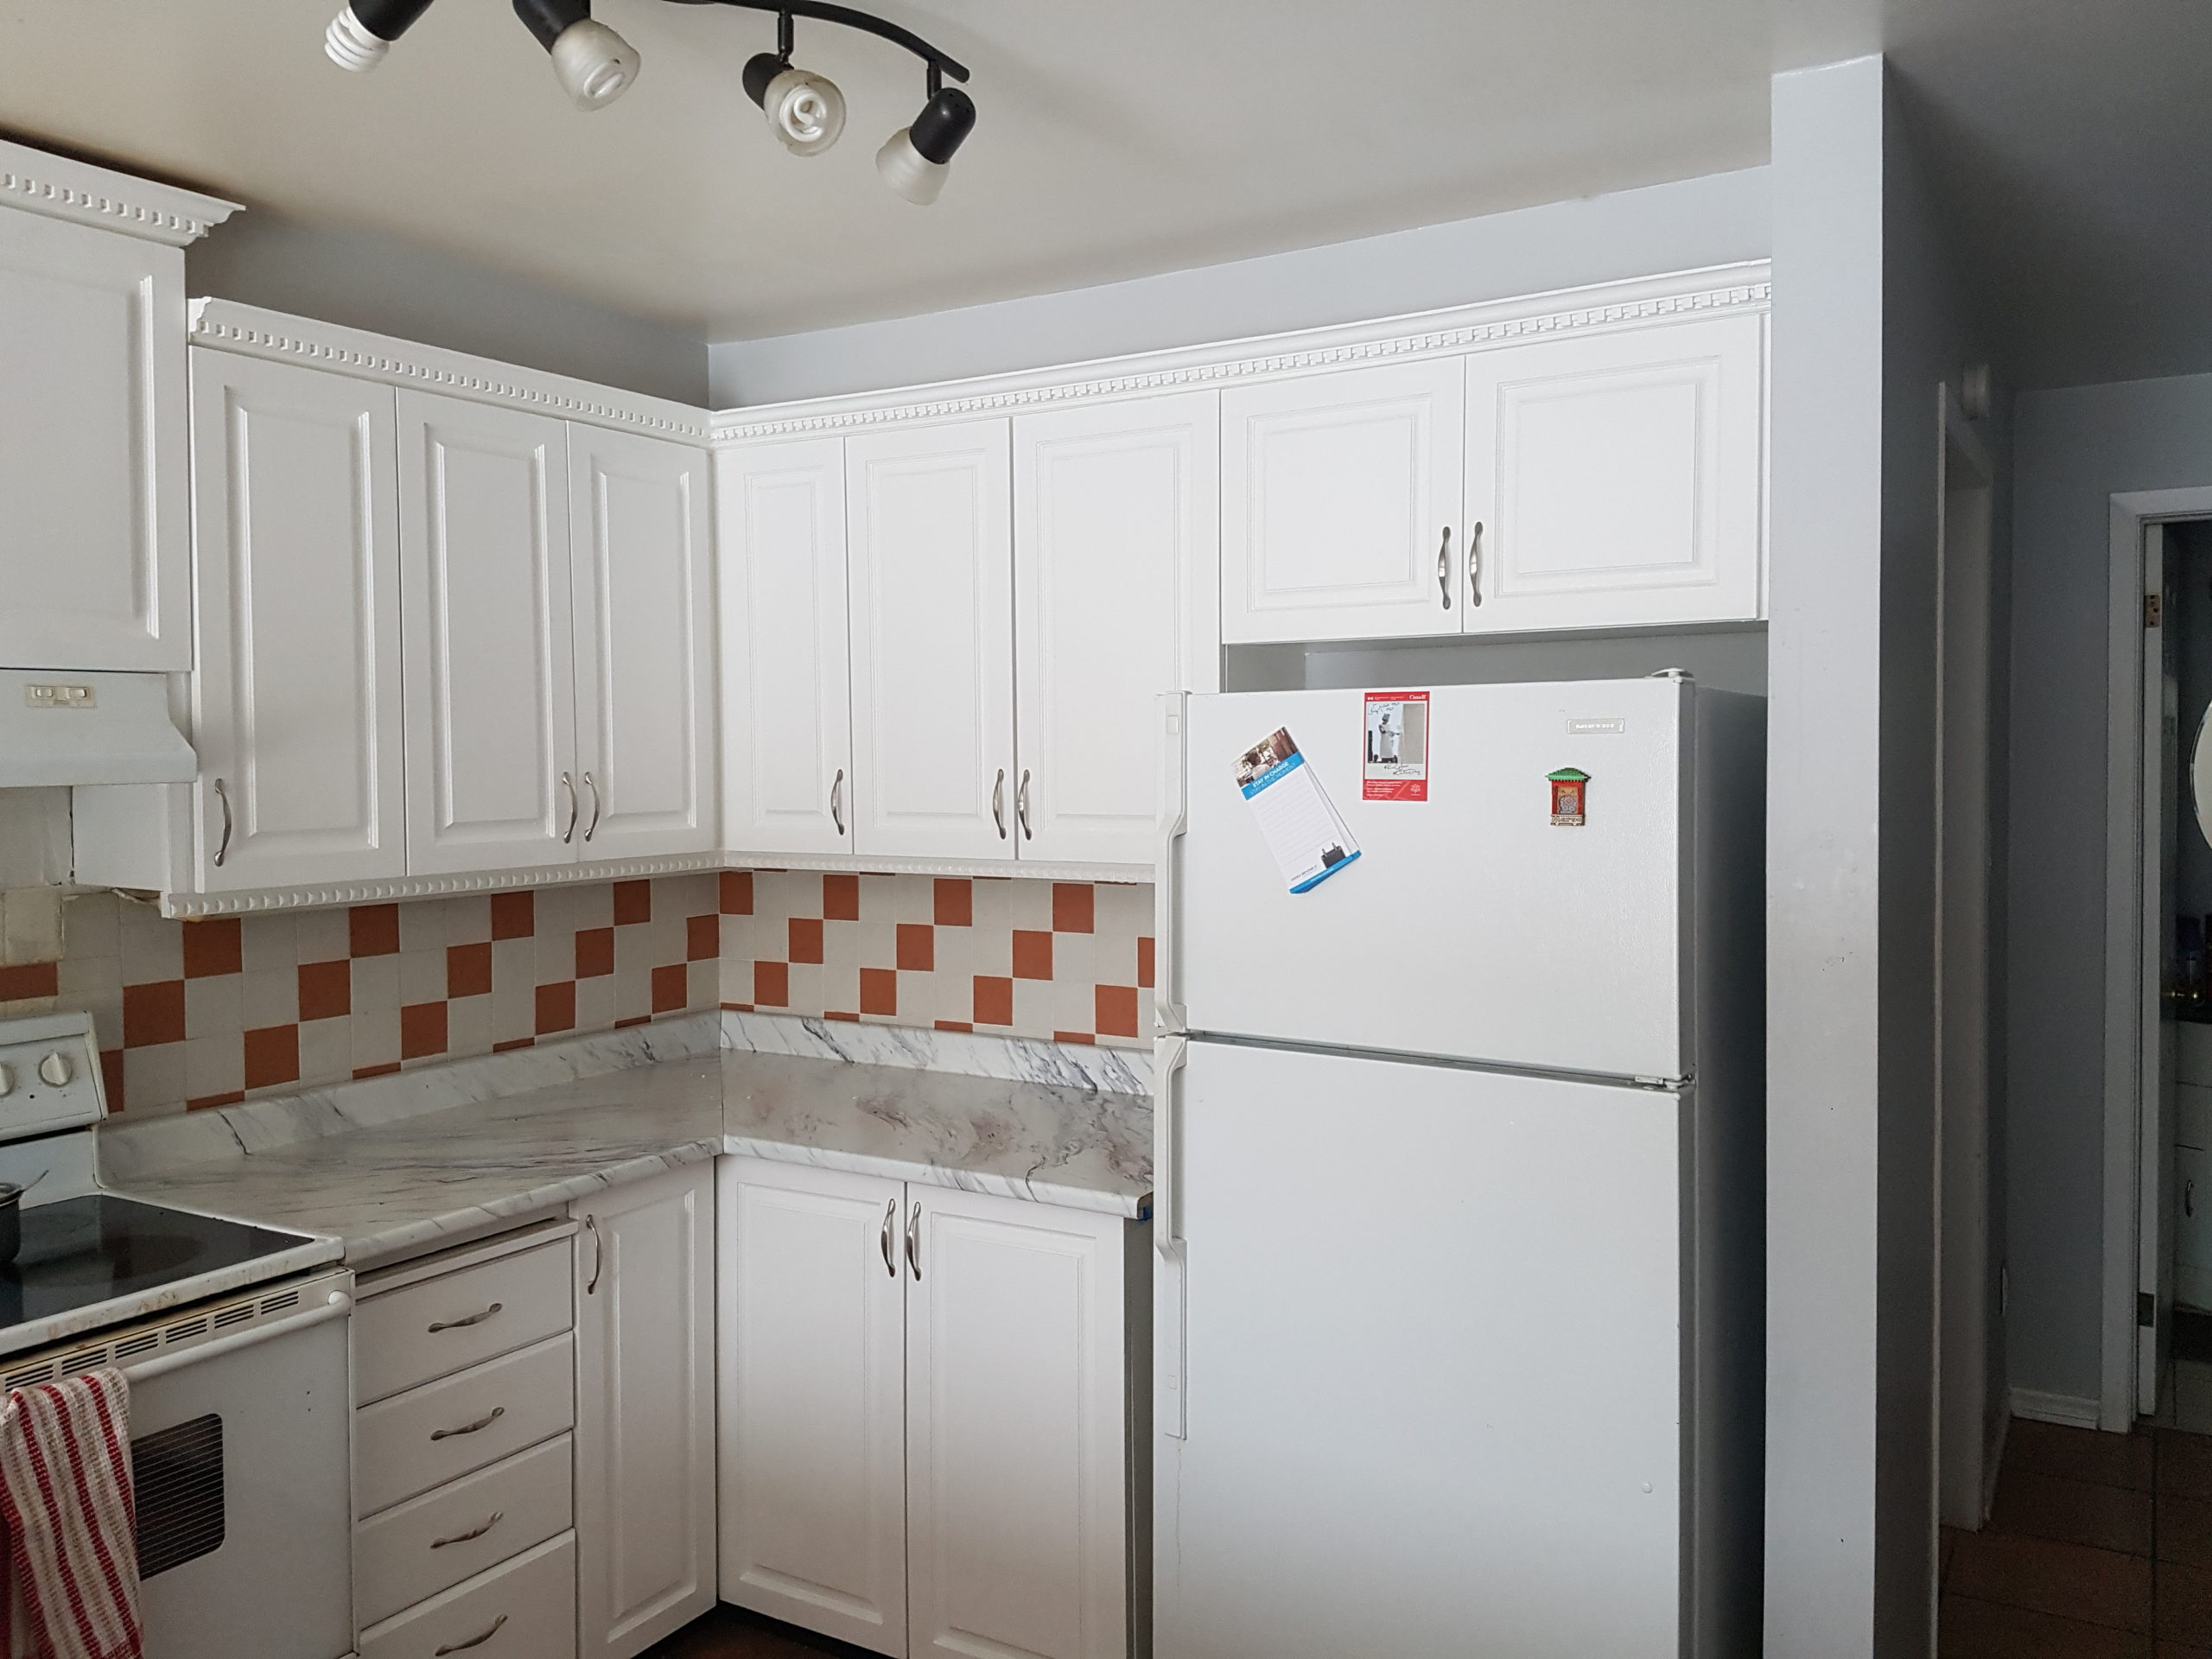 Changed counter and painted Cabinets